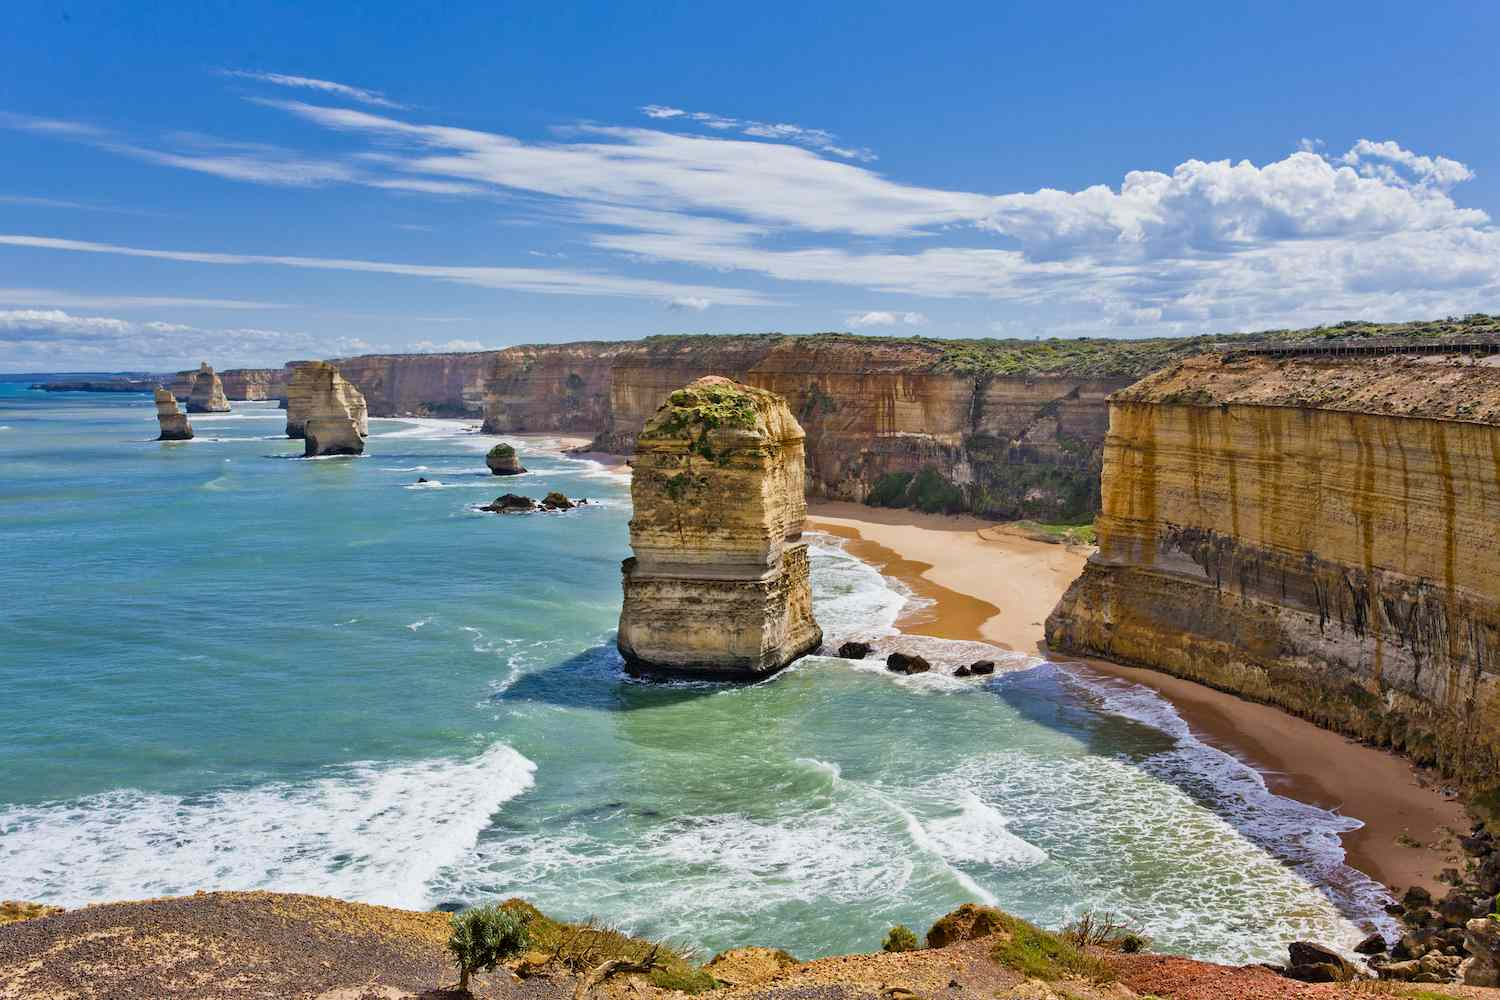 The stacks known as the 12 Apostles jut out of the ocean on the Australian coast